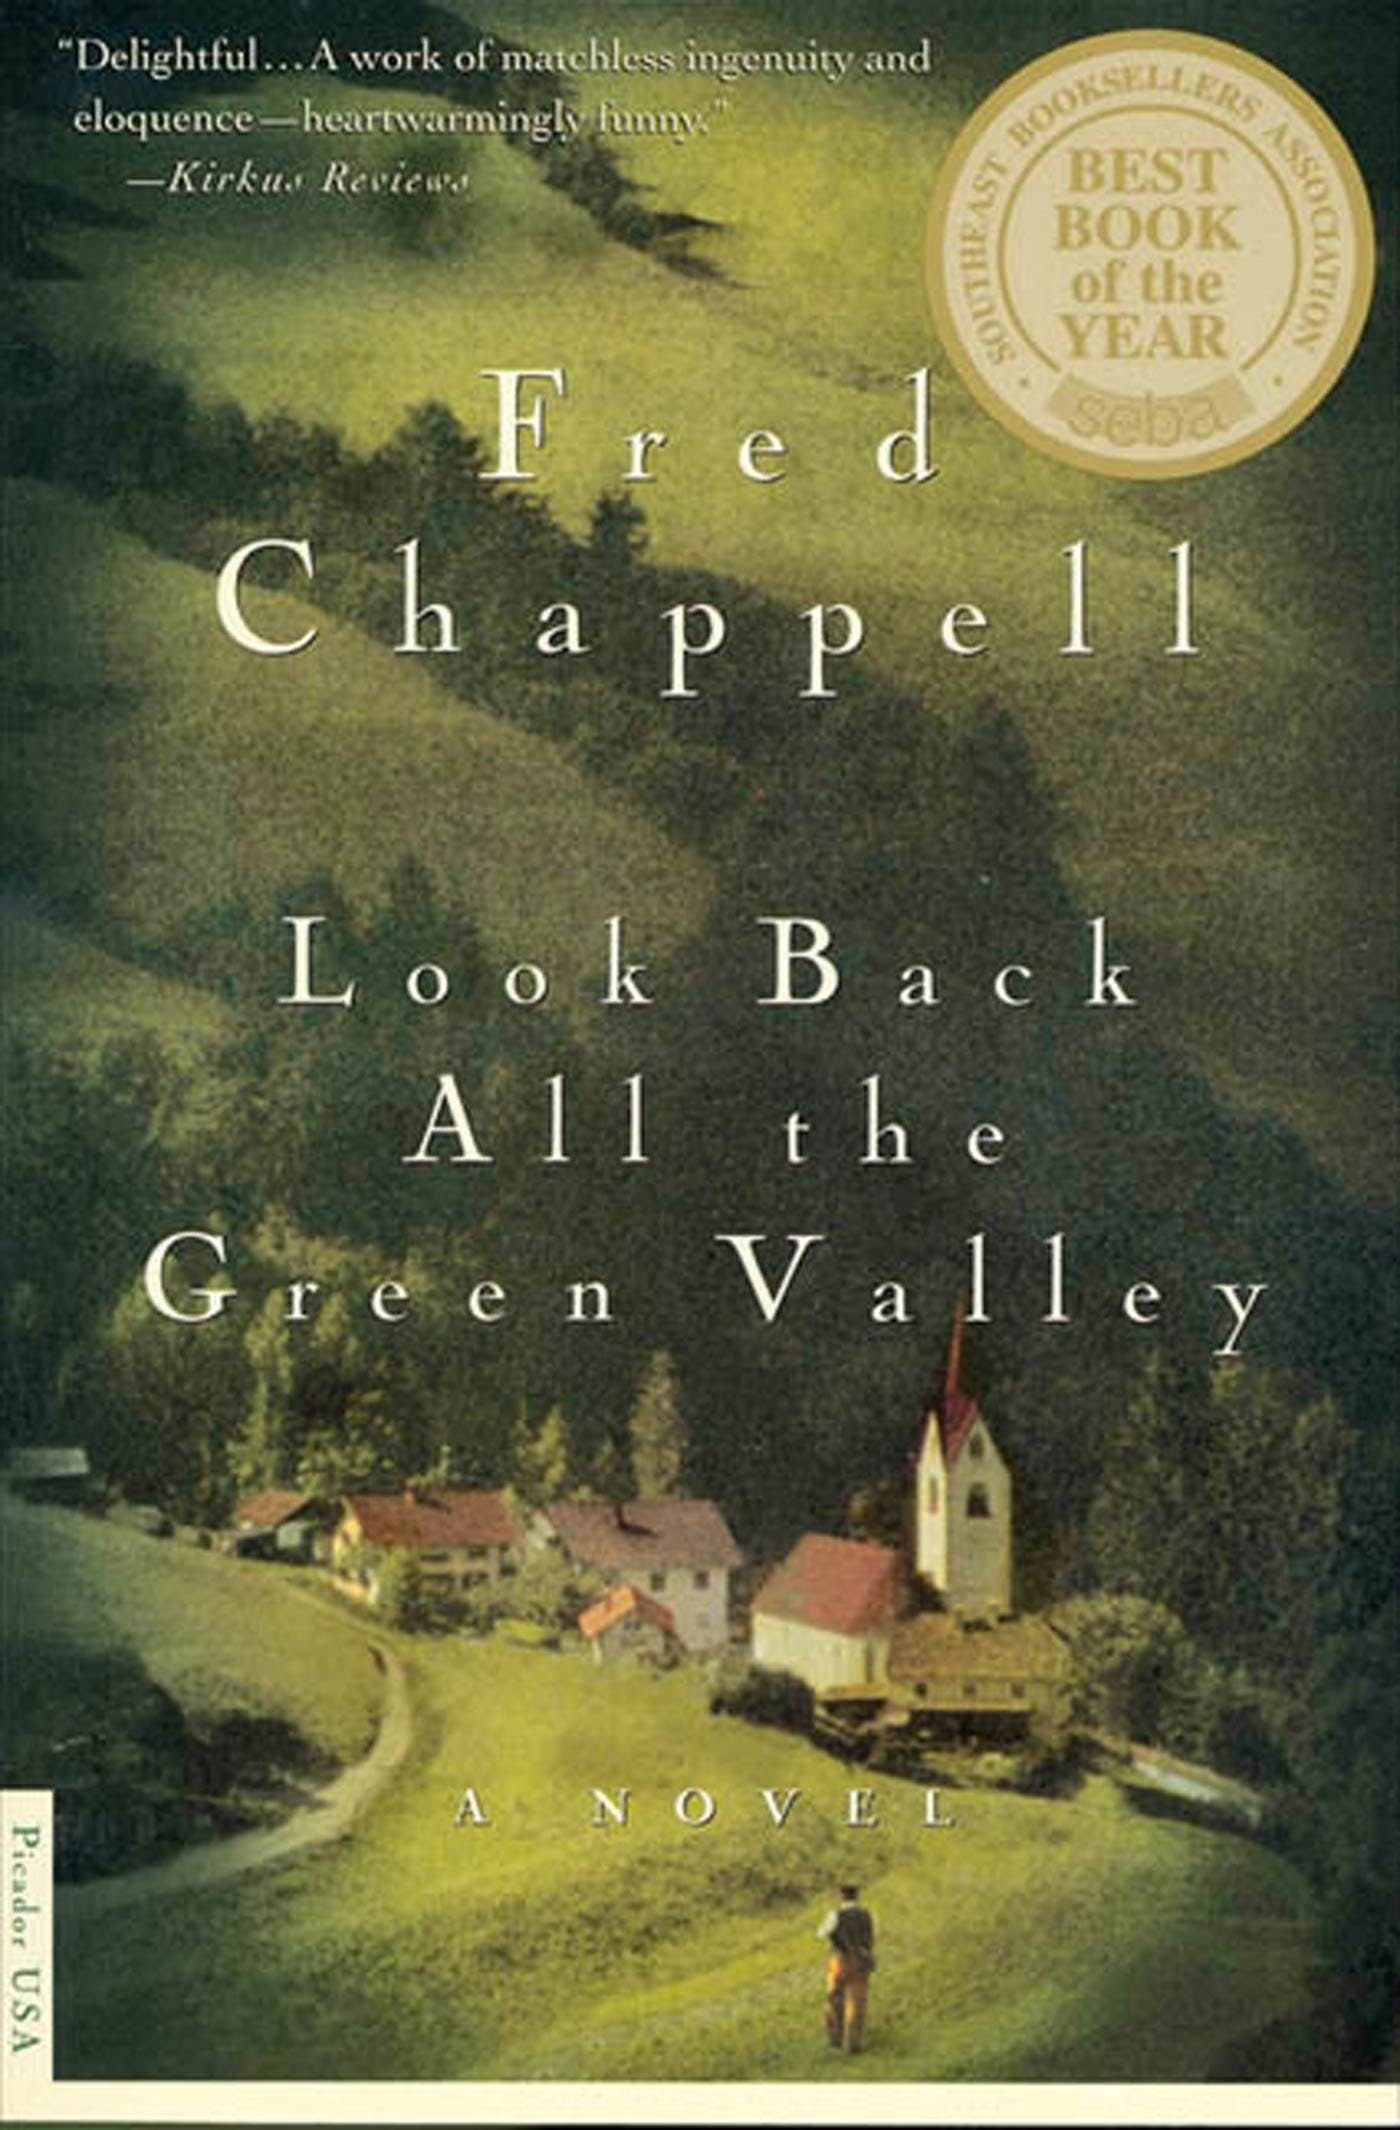 Image of Look Back All the Green Valley